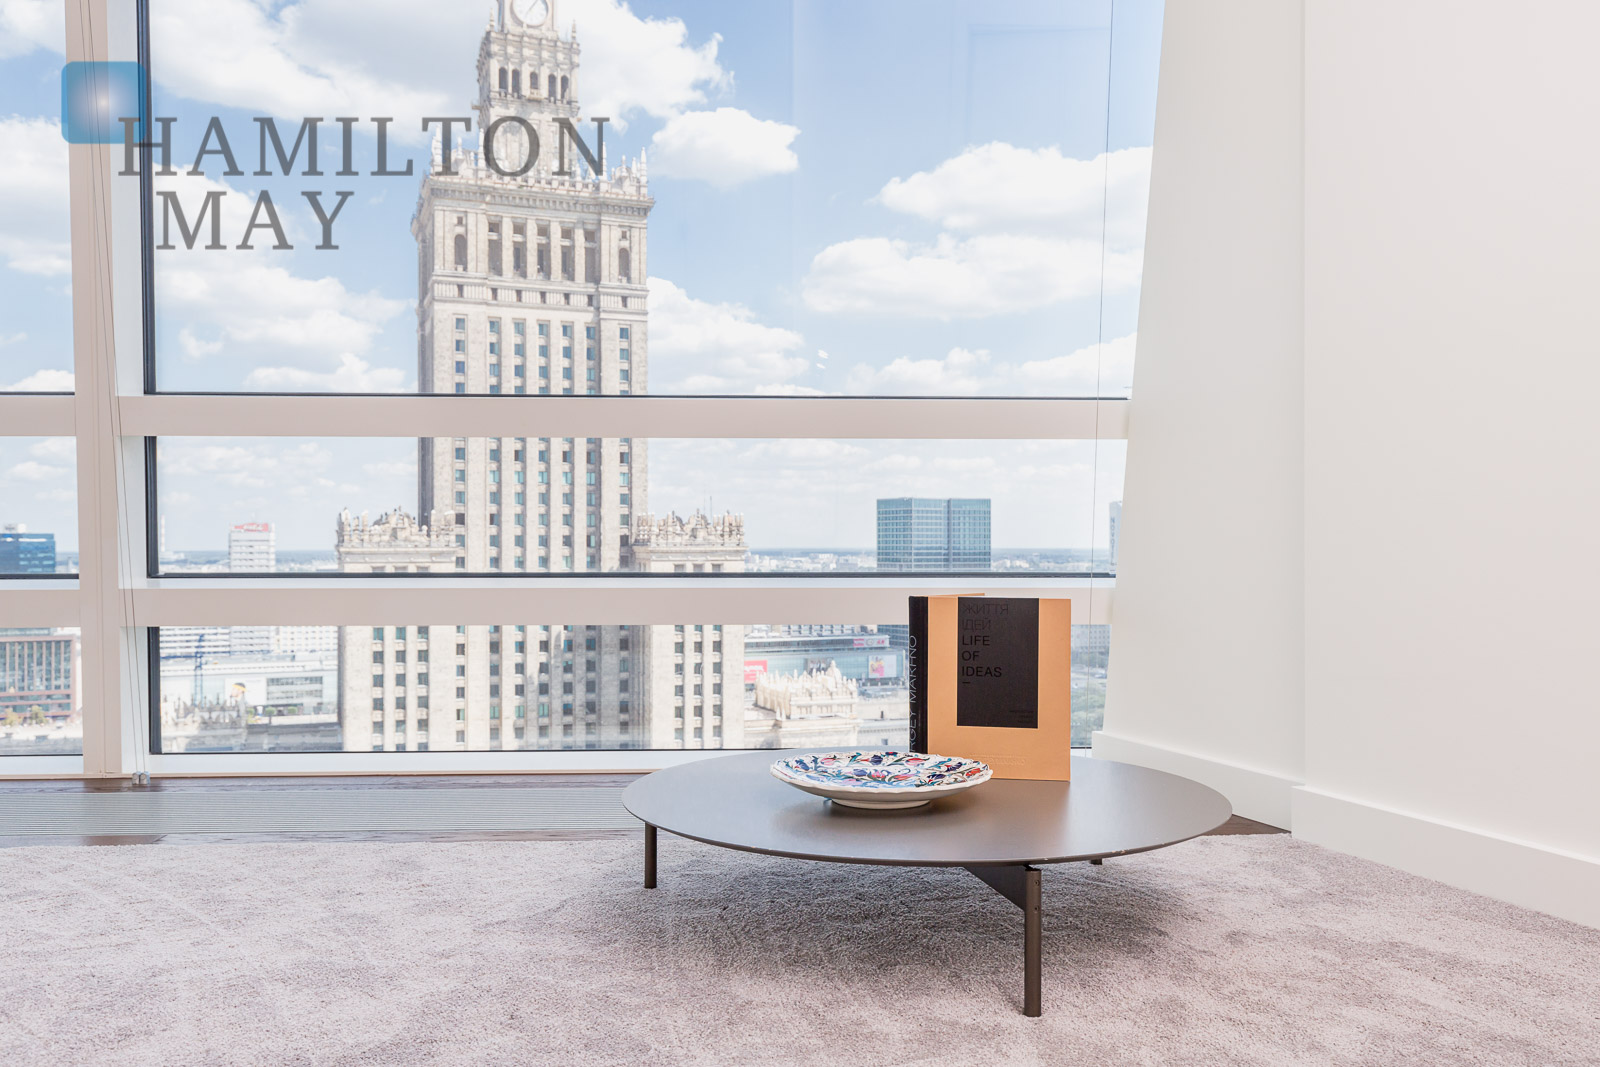 Elegant, spacious apartment with a view of the Palace of Culture in the Złota 44 development Warsaw for sale